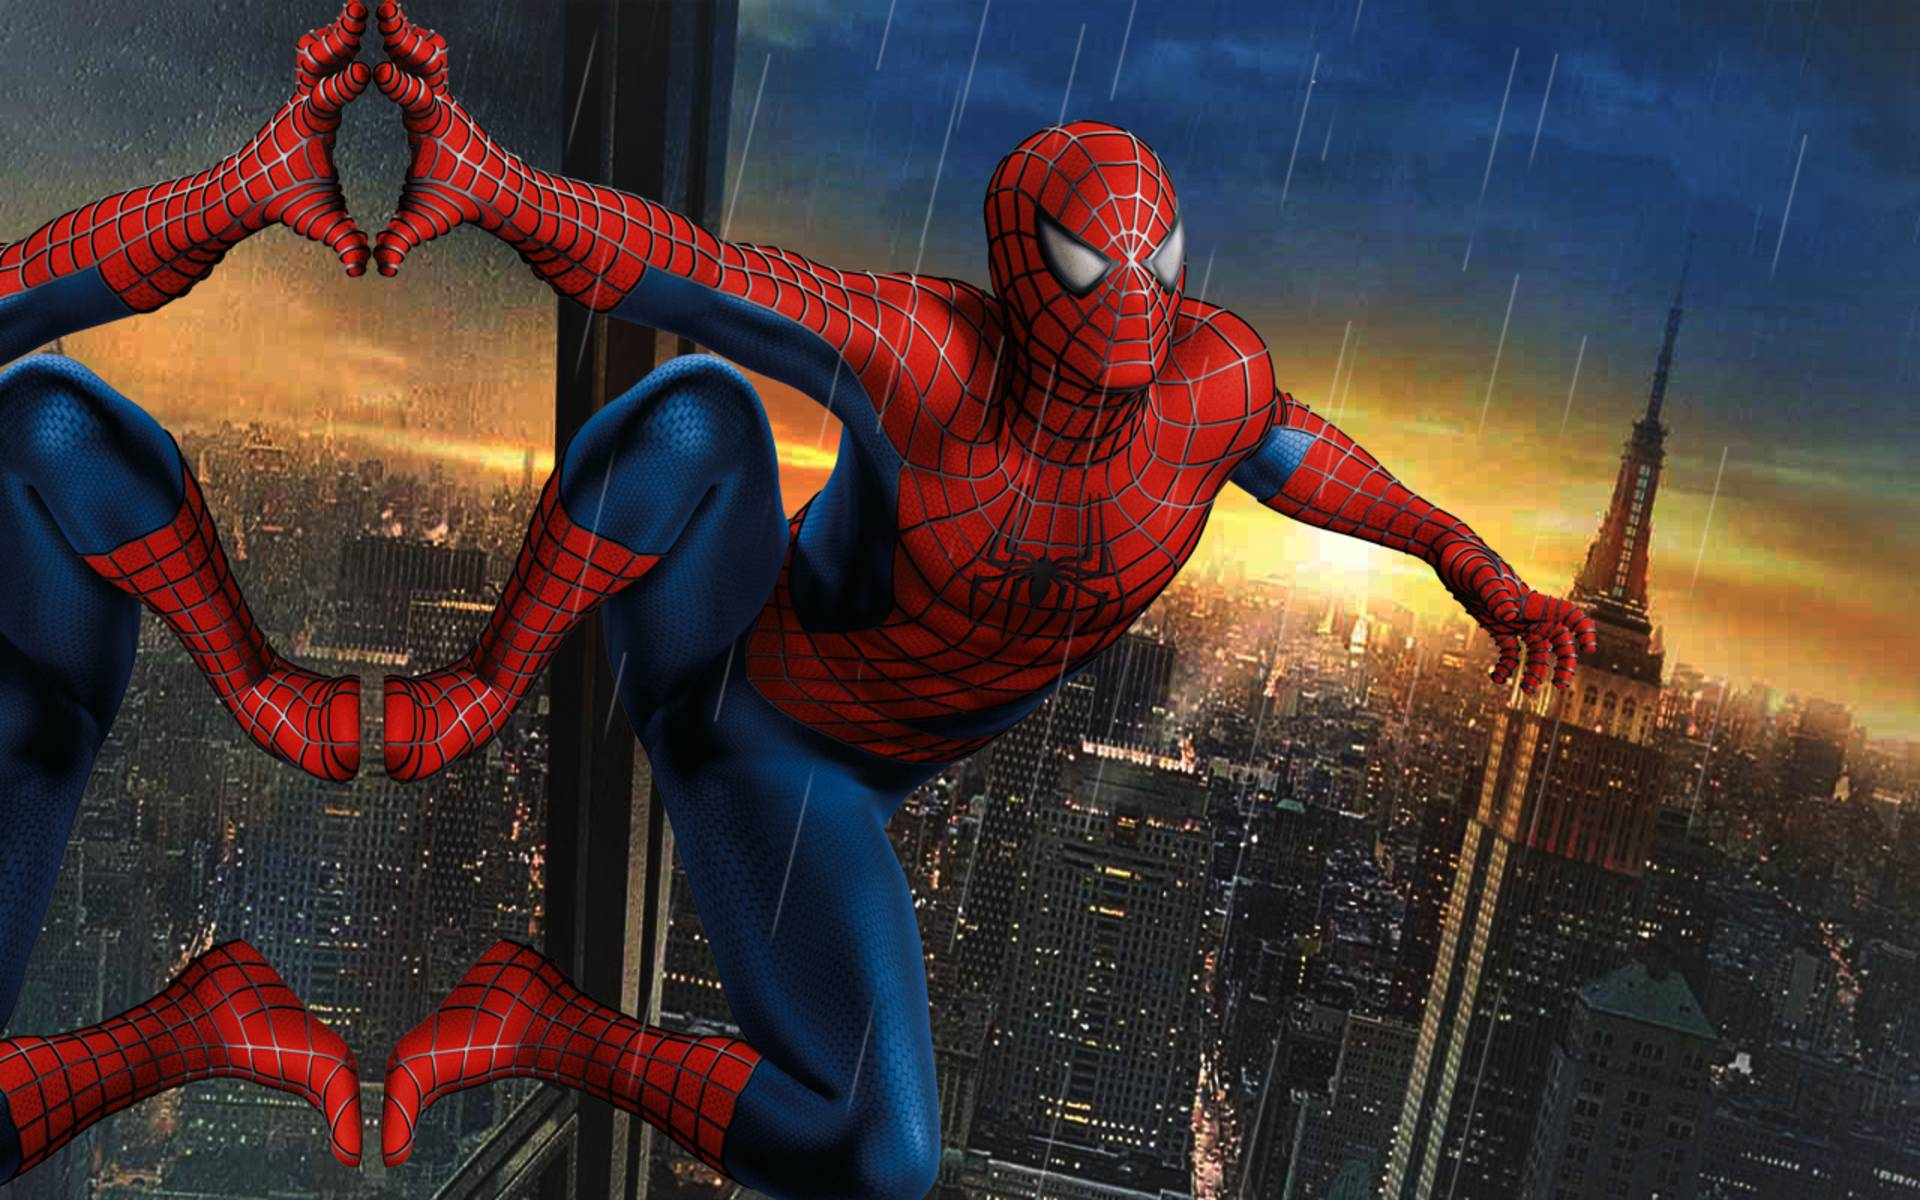 Spiderman wallpapers hd wallpaper cave games spiderman wallpapers hd wallpaper 1200x1920px spiderman voltagebd Images